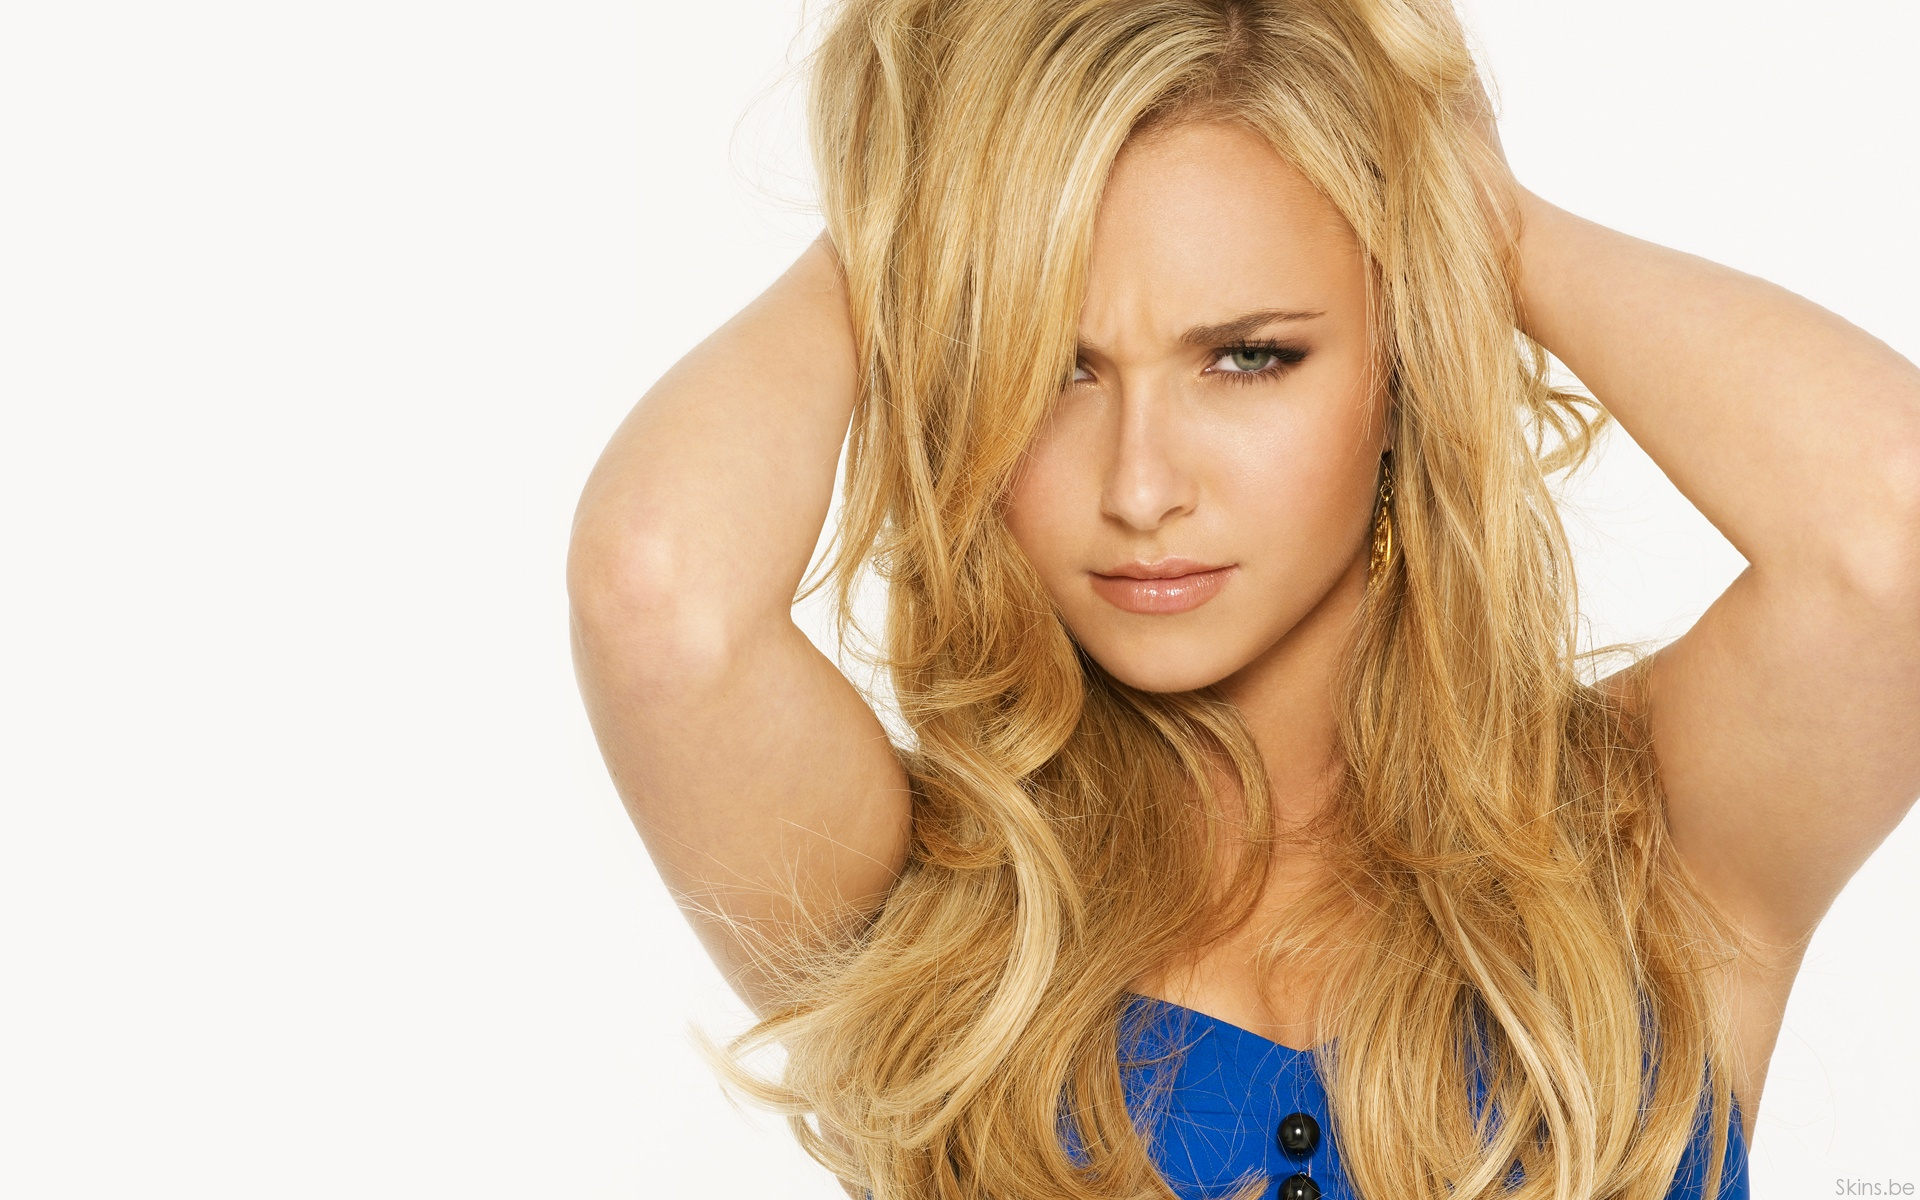 Wallpaper Cinema Video Hayden Panettiere